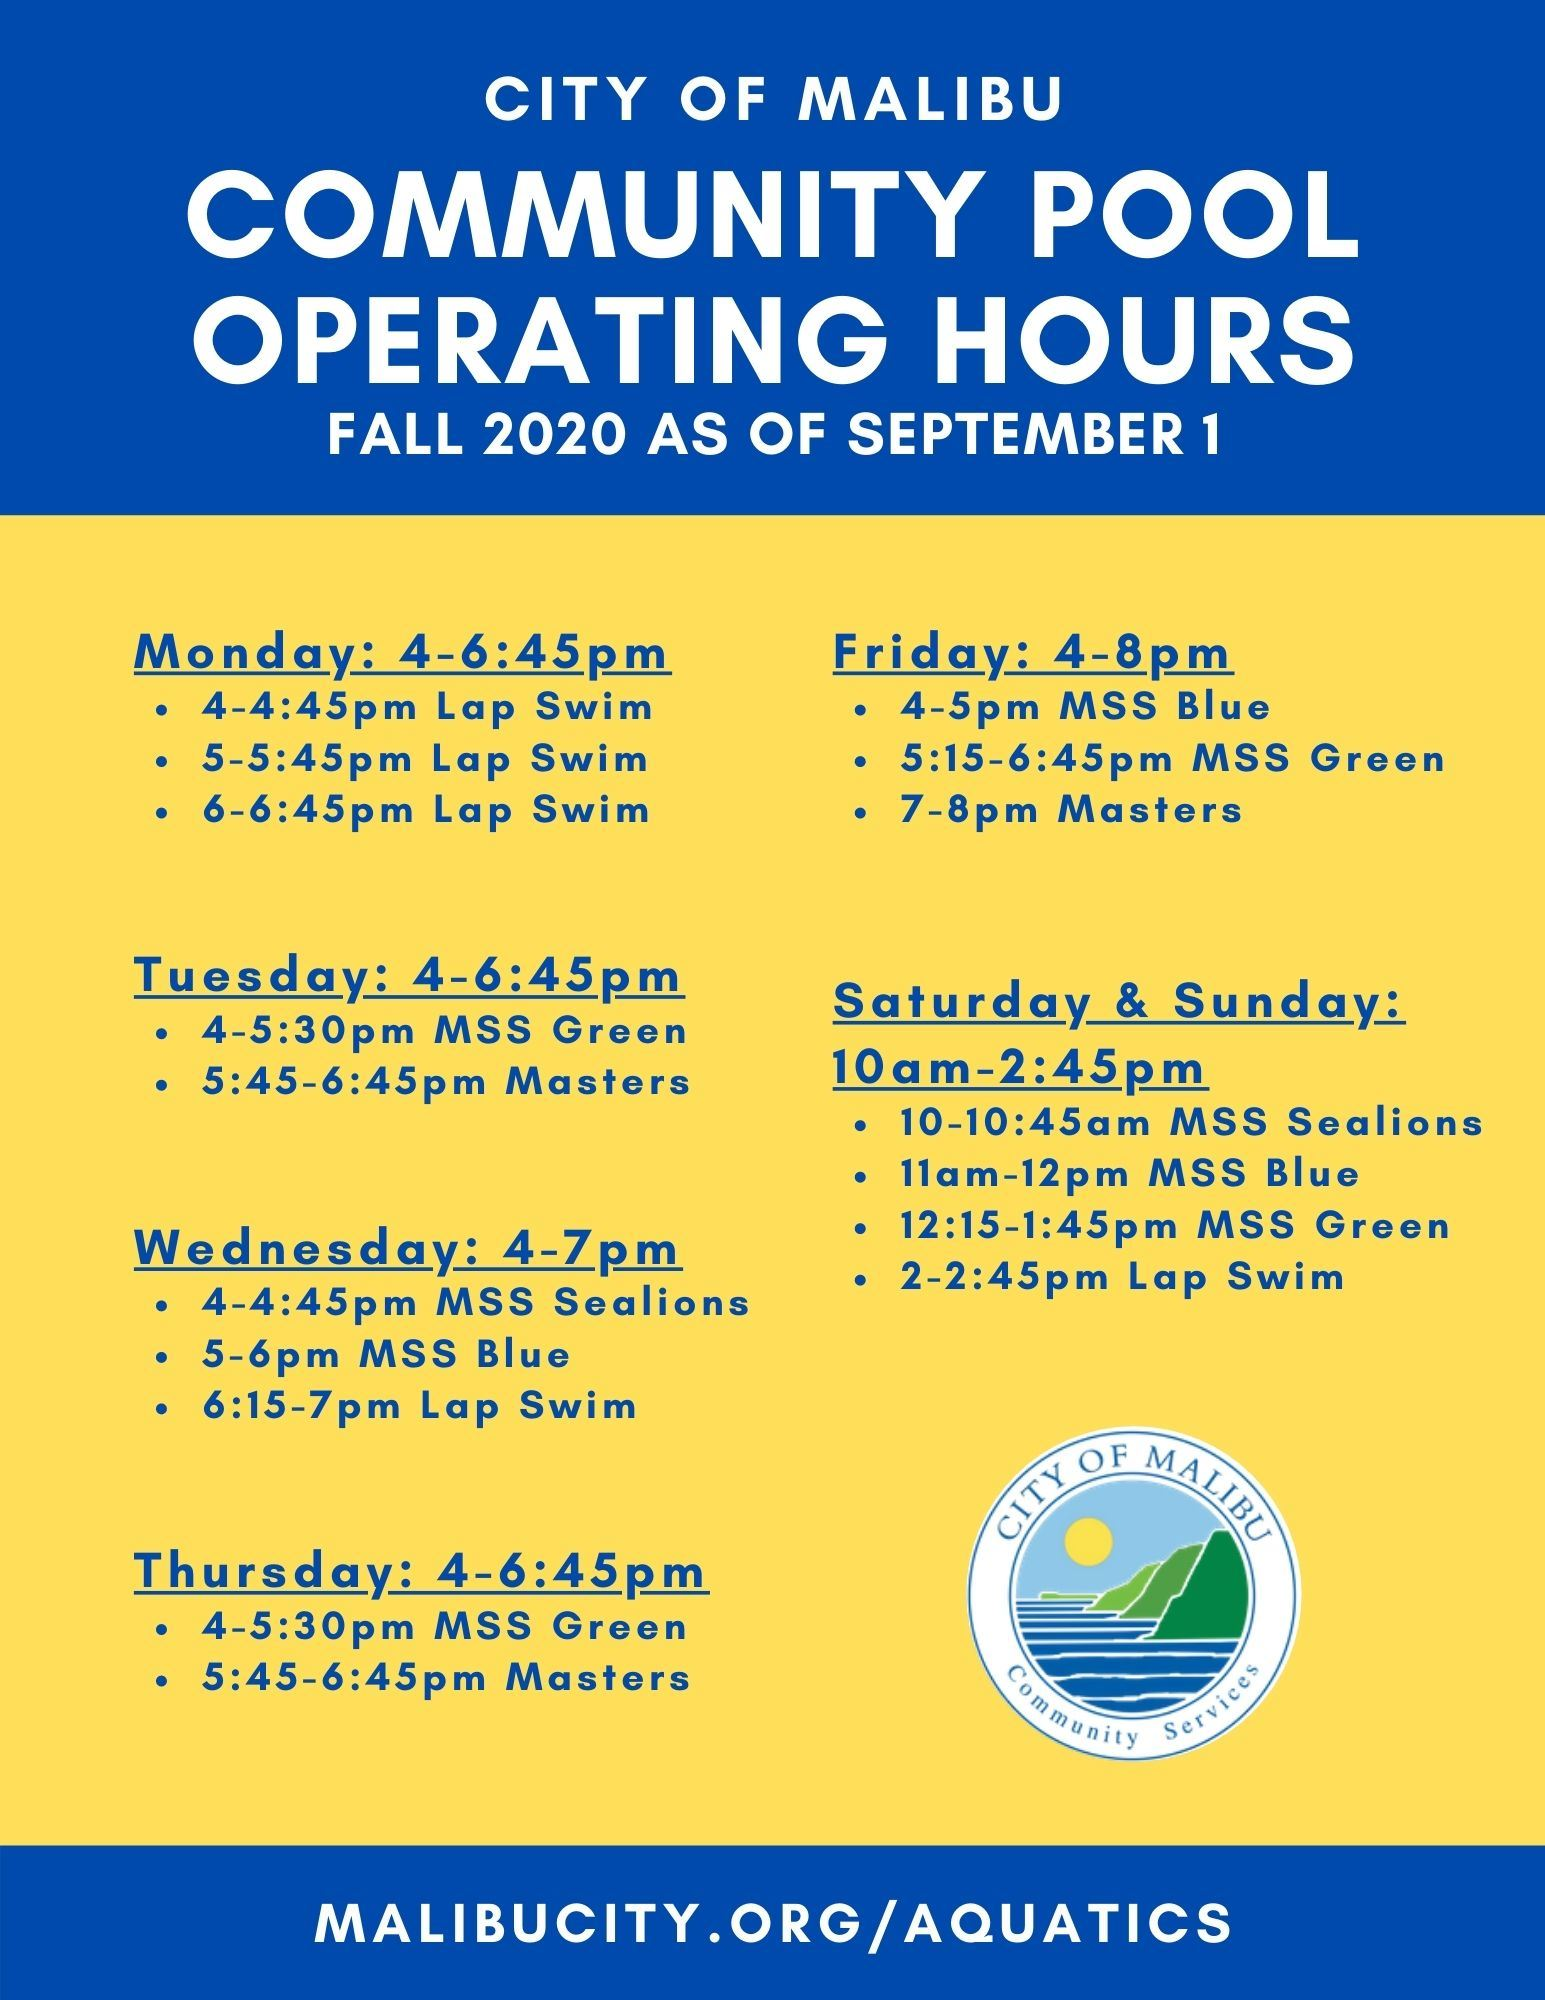 4-7pm Operating Hours as of September